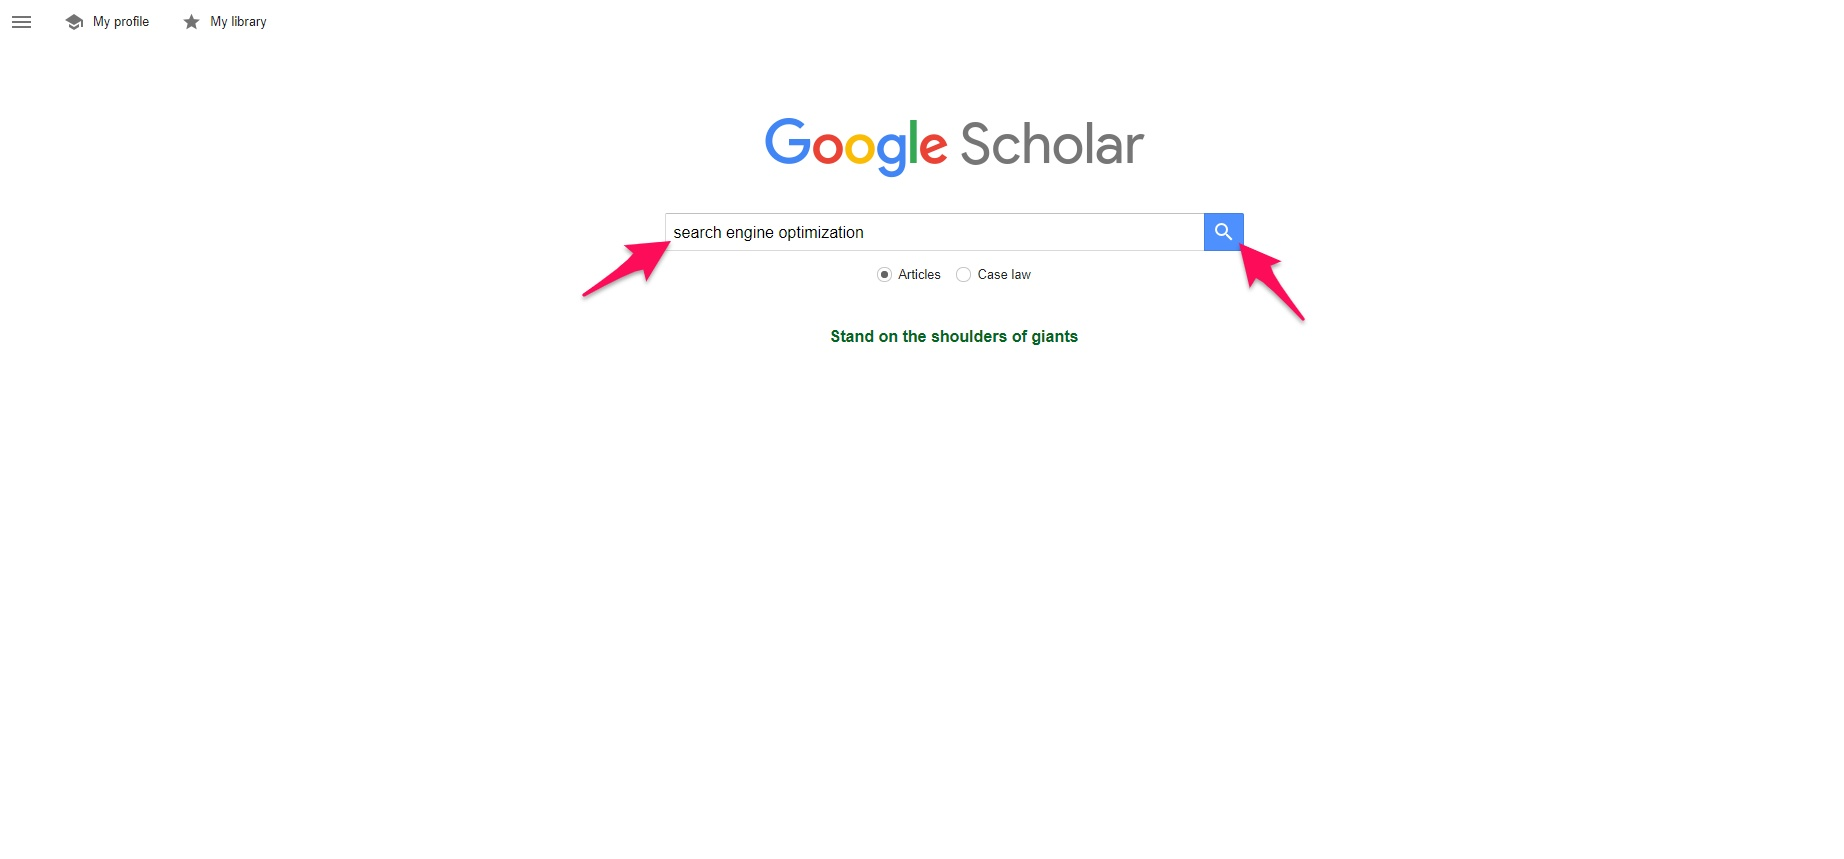 Searching on Google Scholar